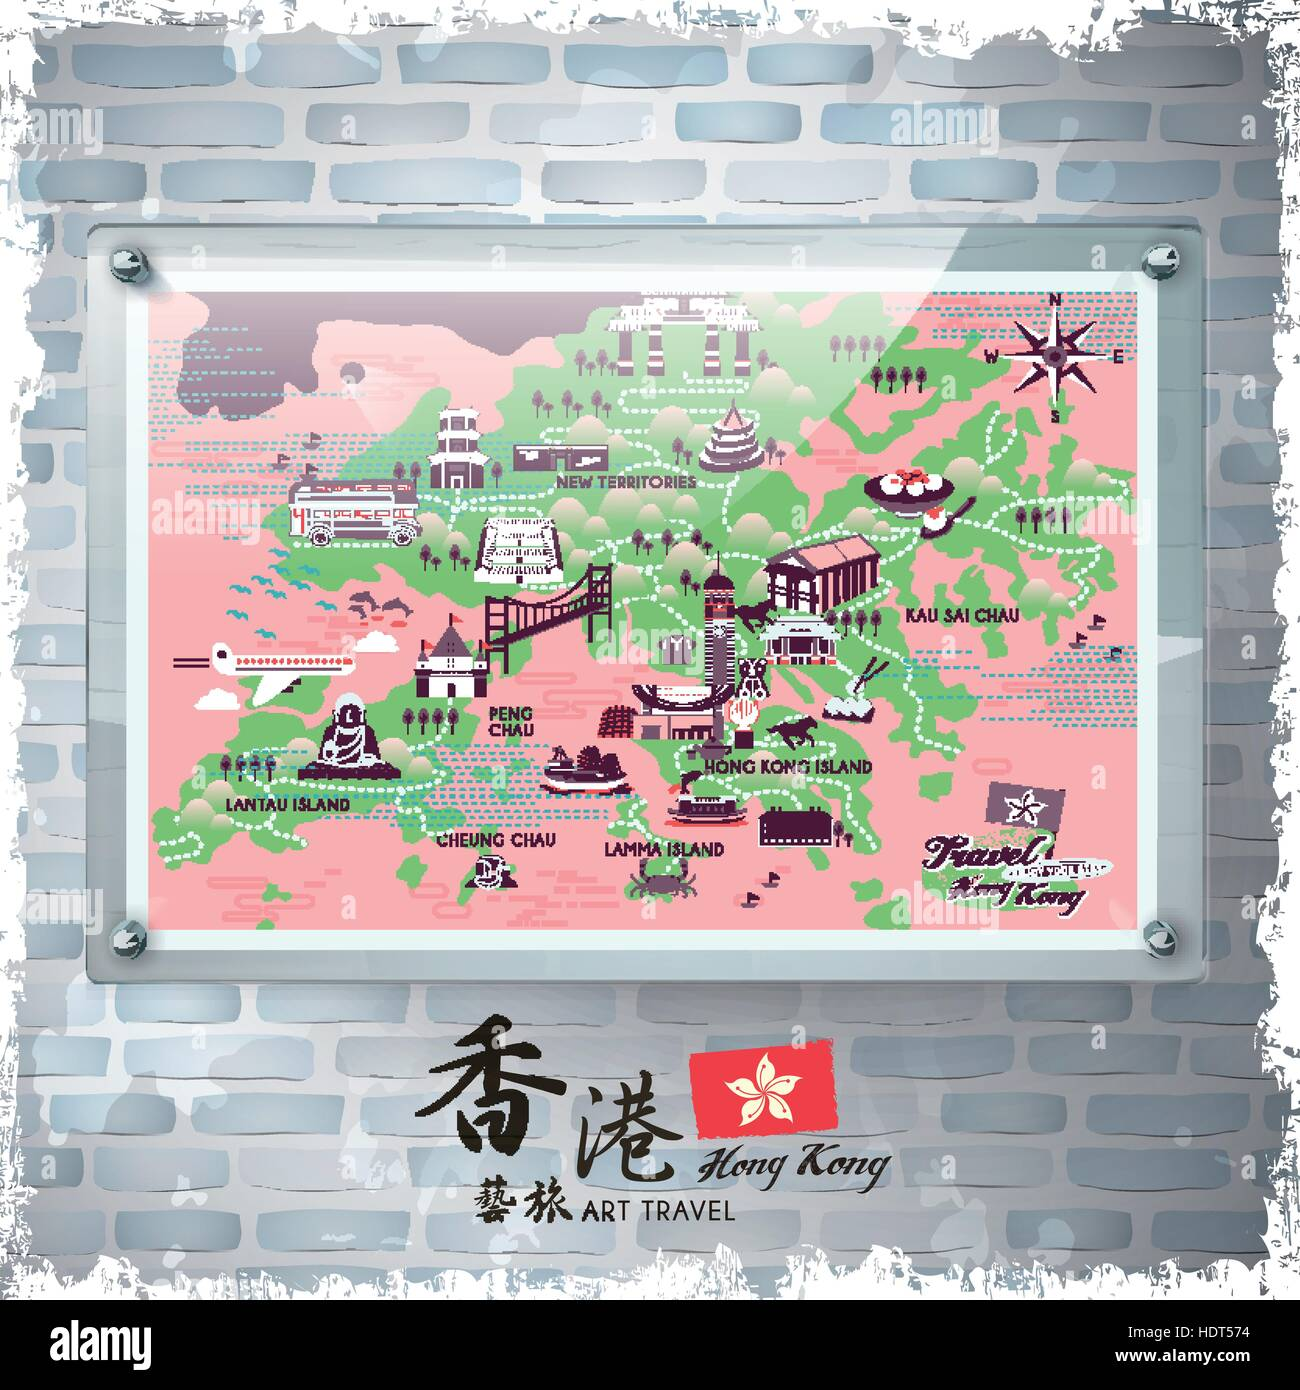 A board poster design - Stock Vector Attractive Hong Kong Travel Poster Design On Advertising Board Hong Kong Art Travel In Chinese Word